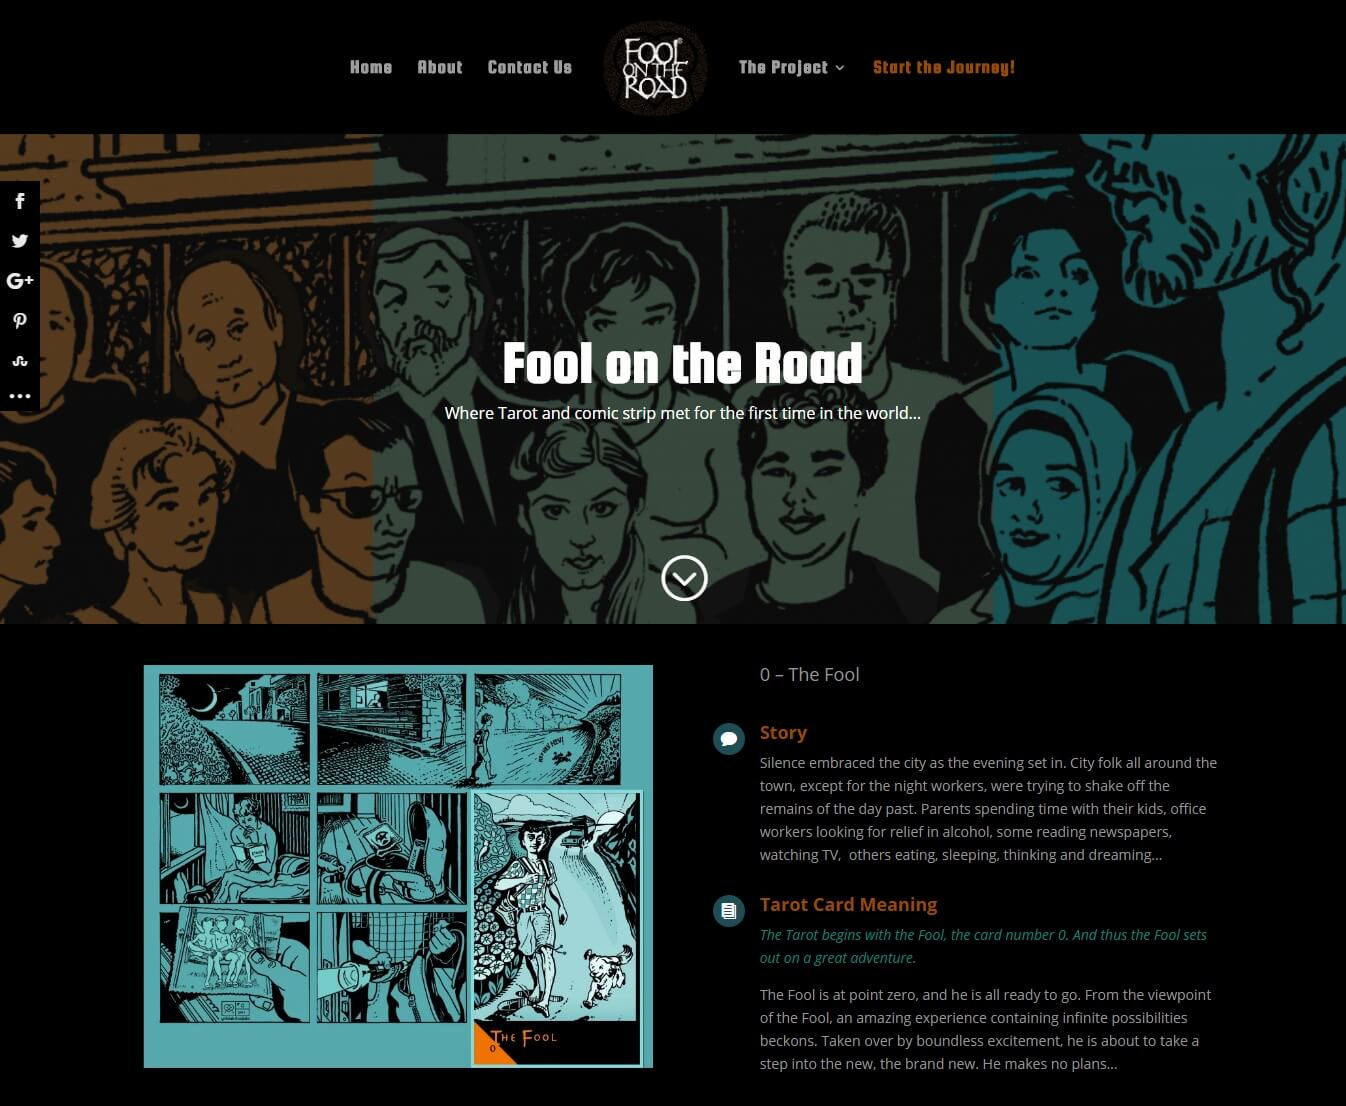 fool on the road web site design